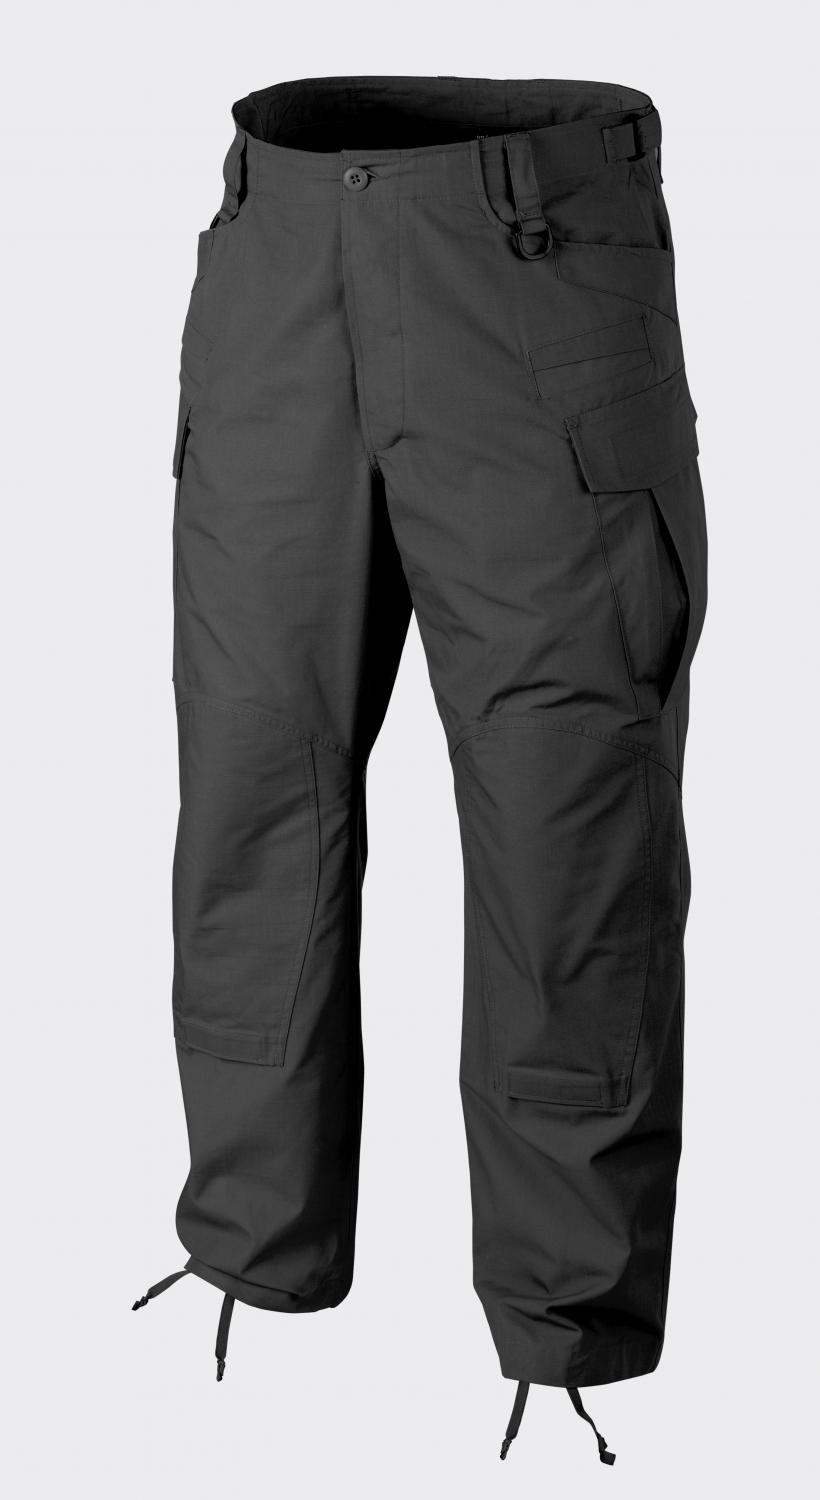 SFU NEXT® - PolyCotton Twill Black